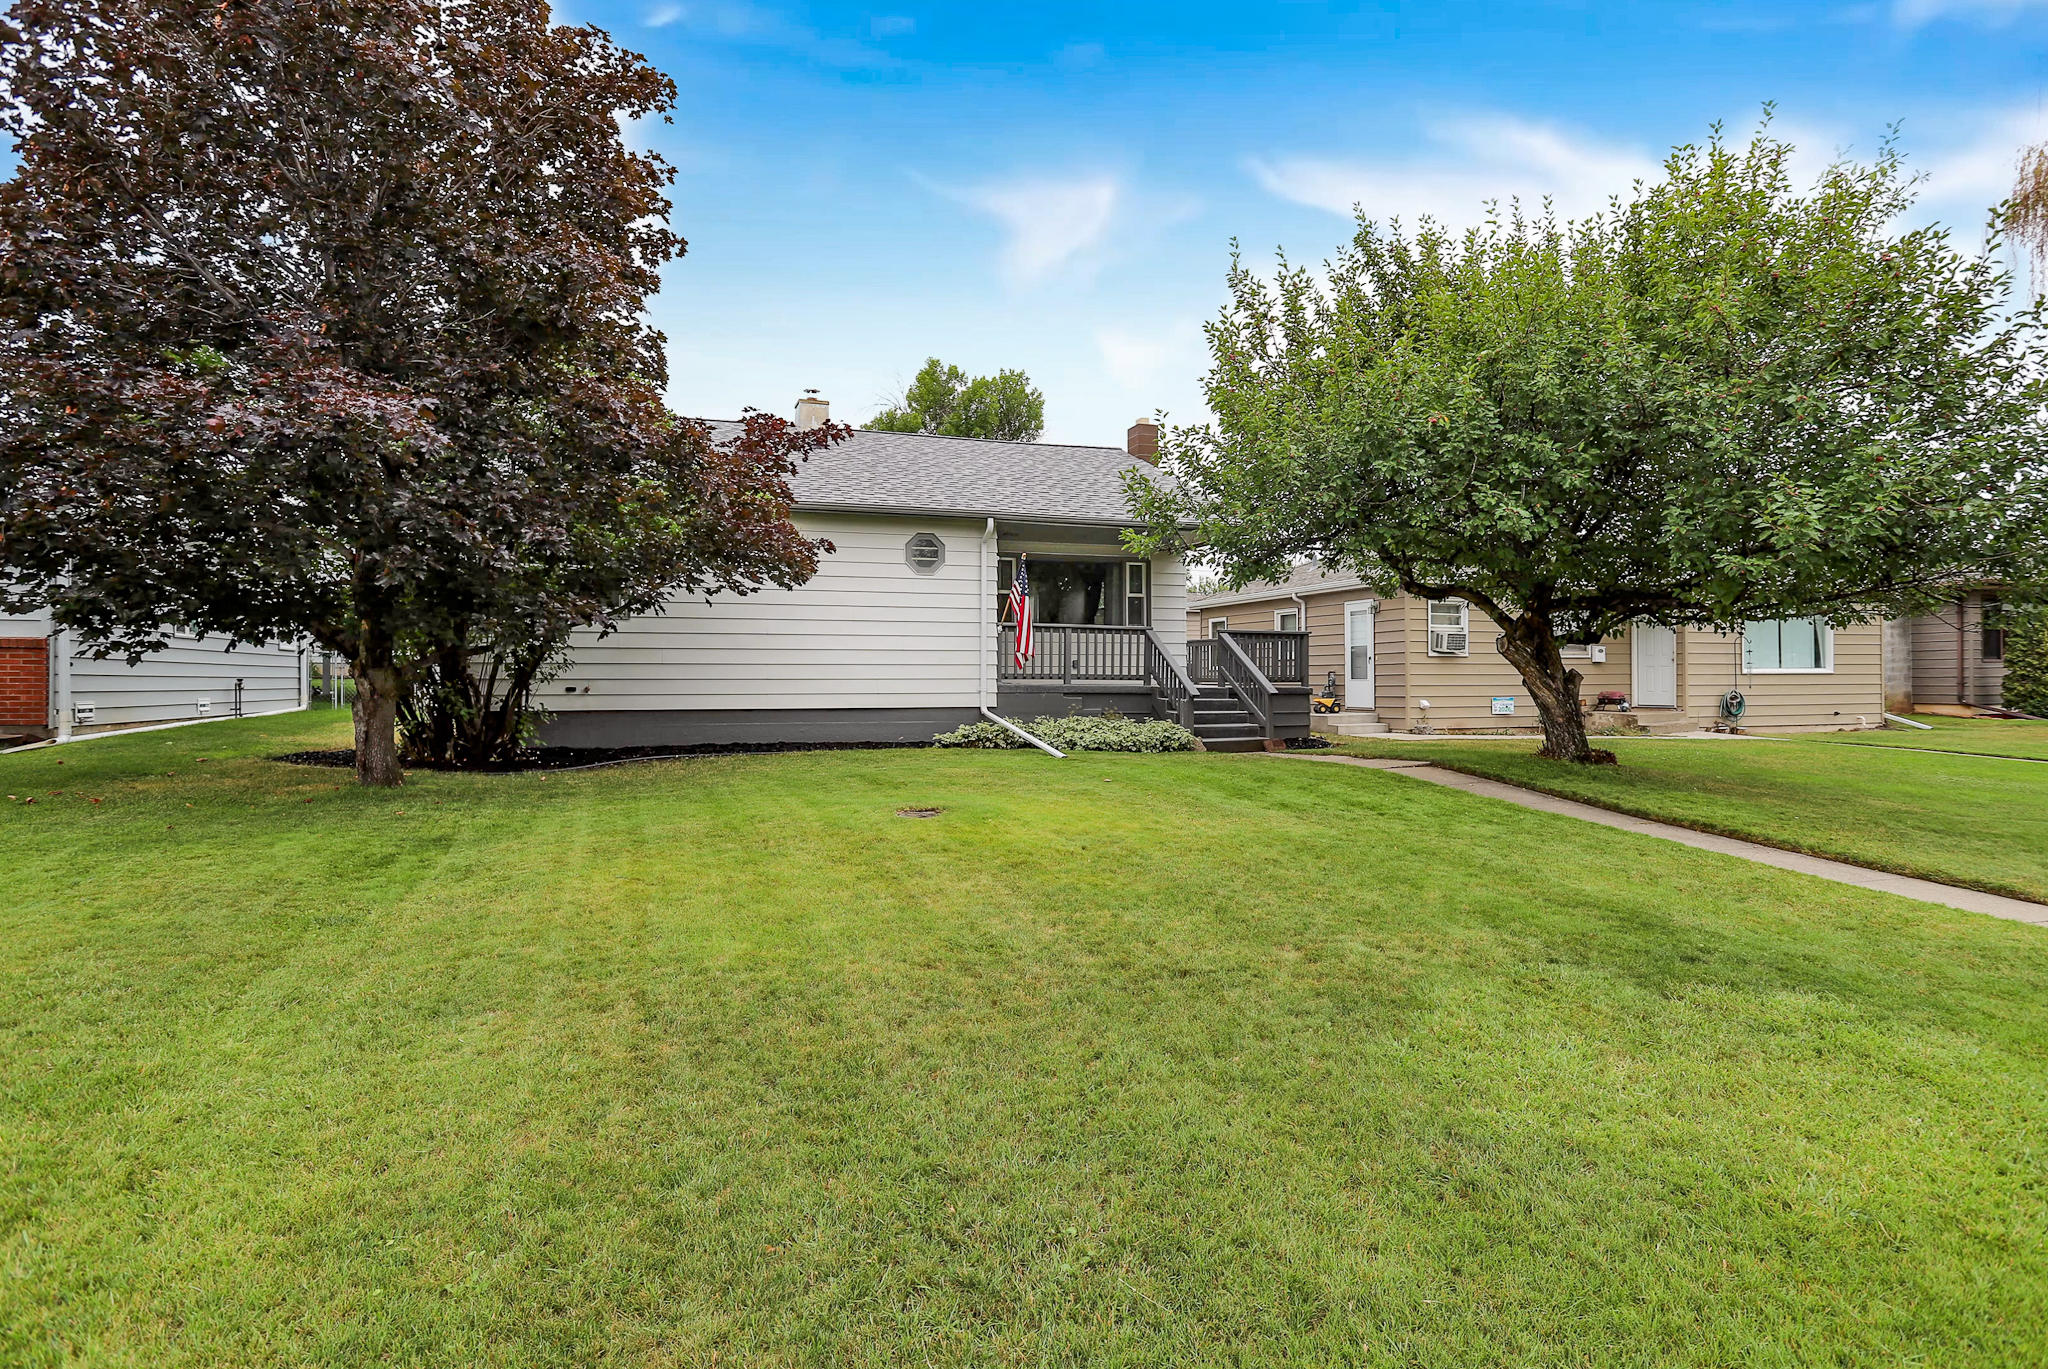 Updated, warm, east end home in a great neighborhood next to a park with a public pool. Beautiful hardwood floors, three bedrooms on main floor. New hot water heater this year. Listed by Joseph Lee